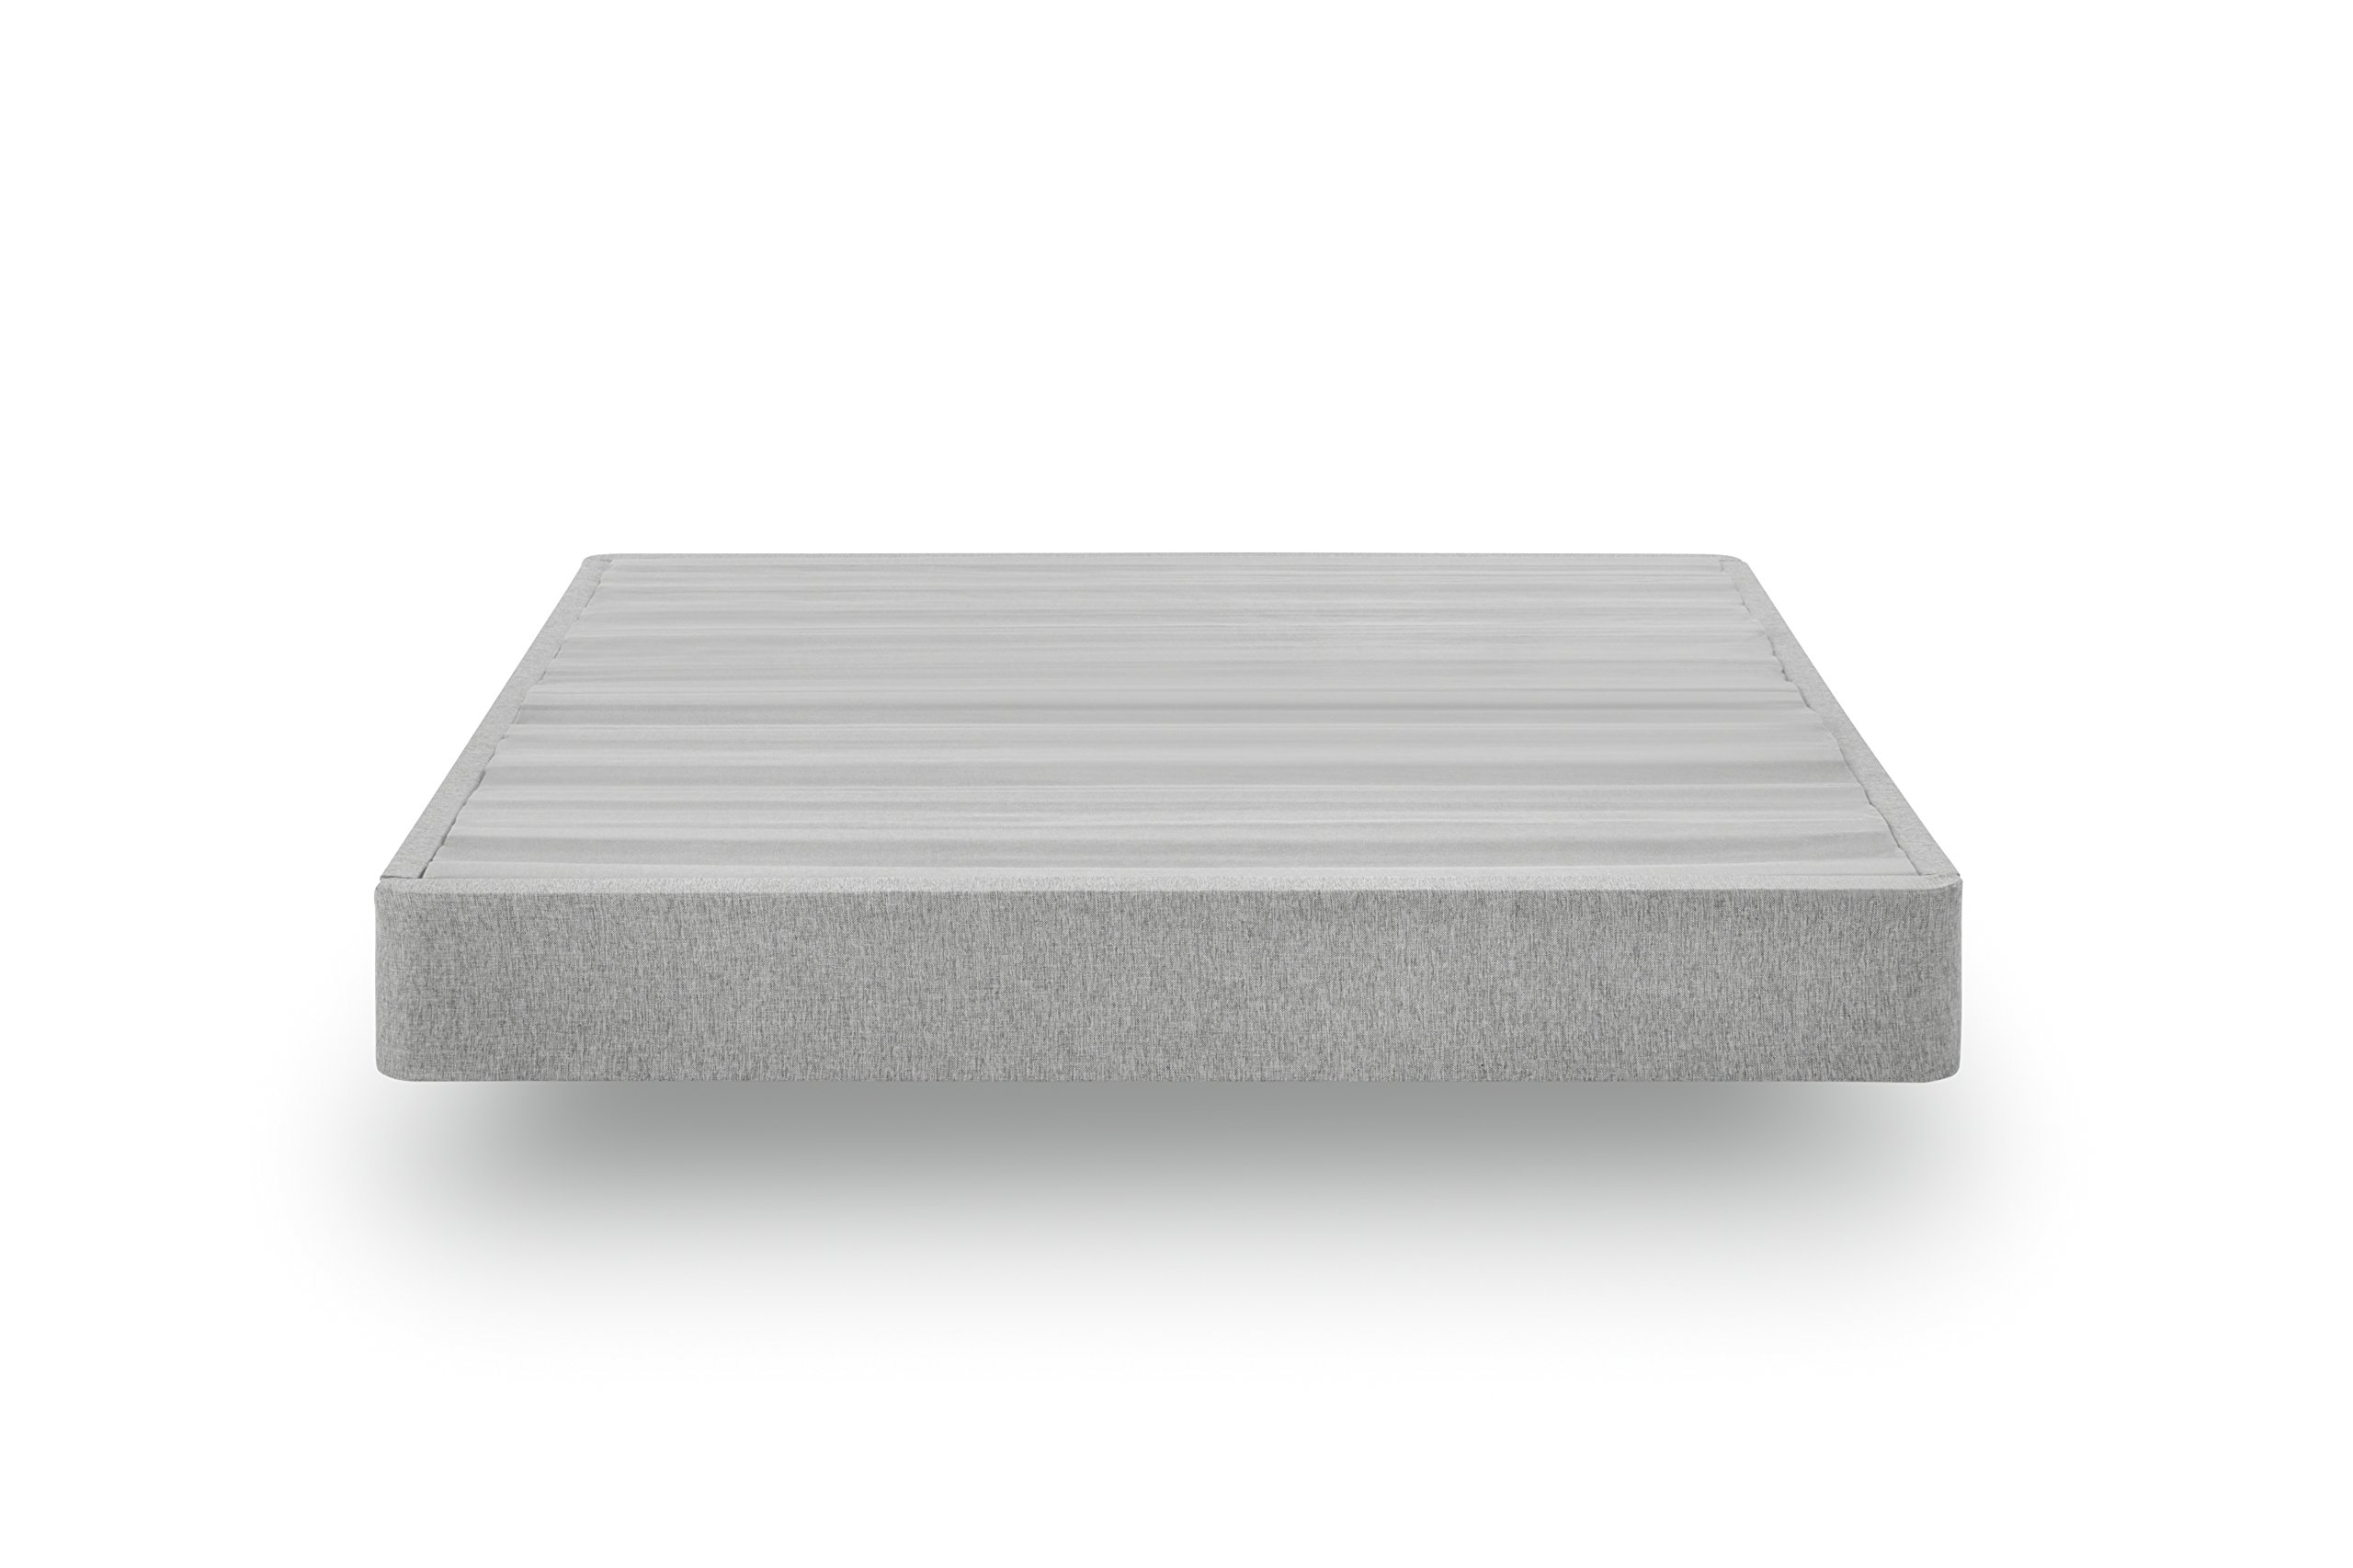 Tuft & Needle Mattress Box Foundation by Box Spring Replacement | Tool-Less Assembly | Durable Cover | Provides Support, Height, and Airflow For Your Mattress | 5-Year Warranty (Queen)